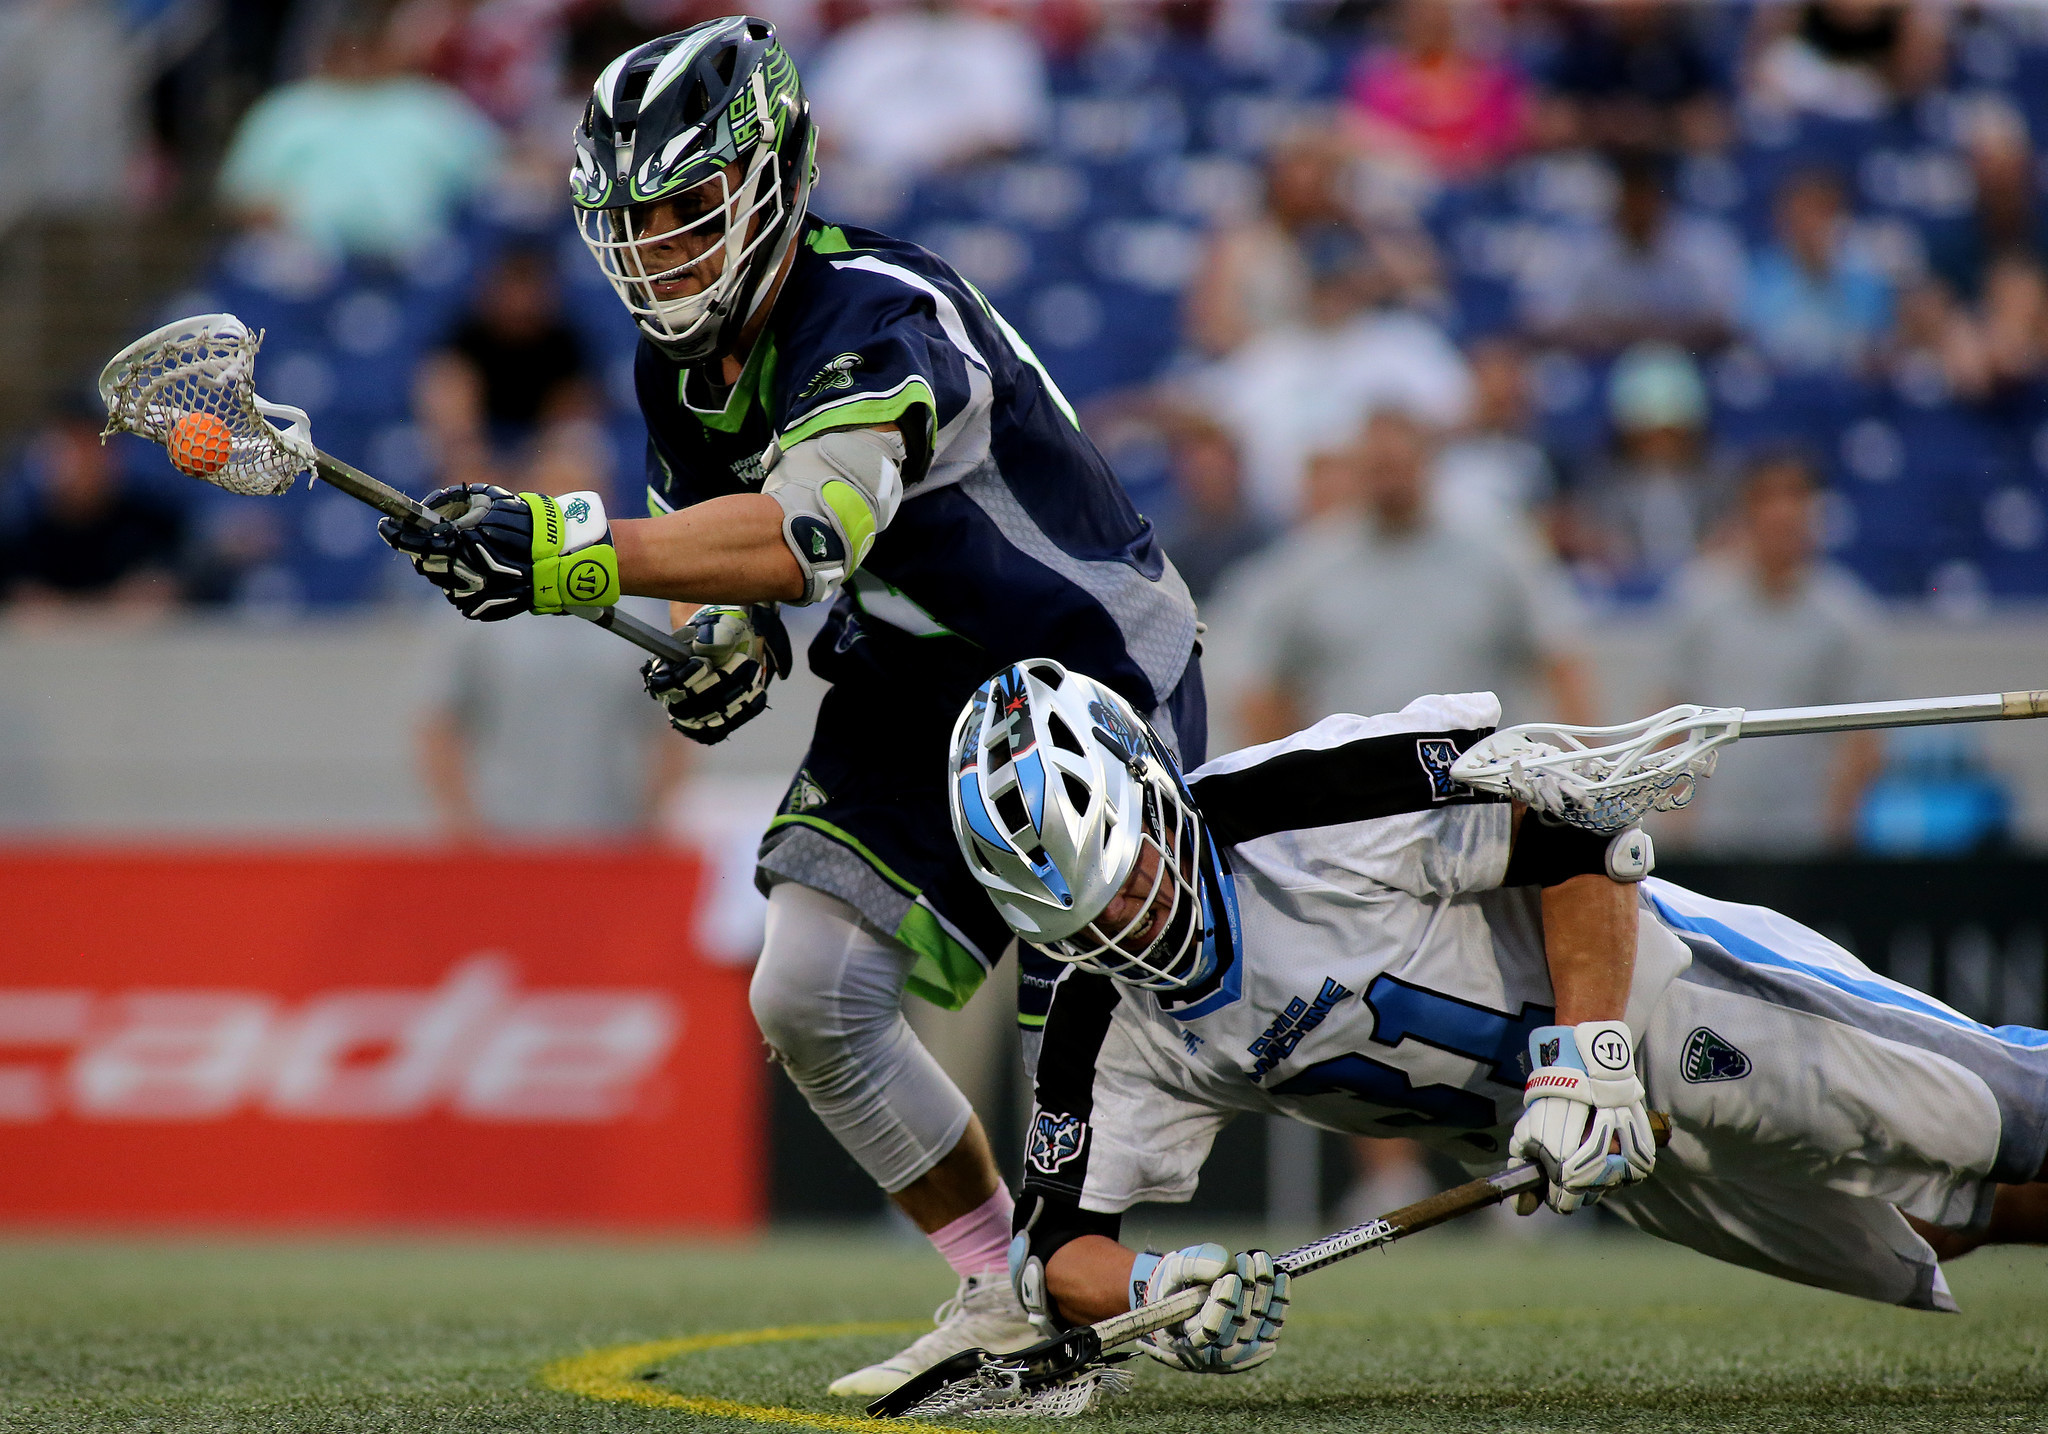 Digest (June 12): Major League Lacrosse announces roster for game vs. Team USA